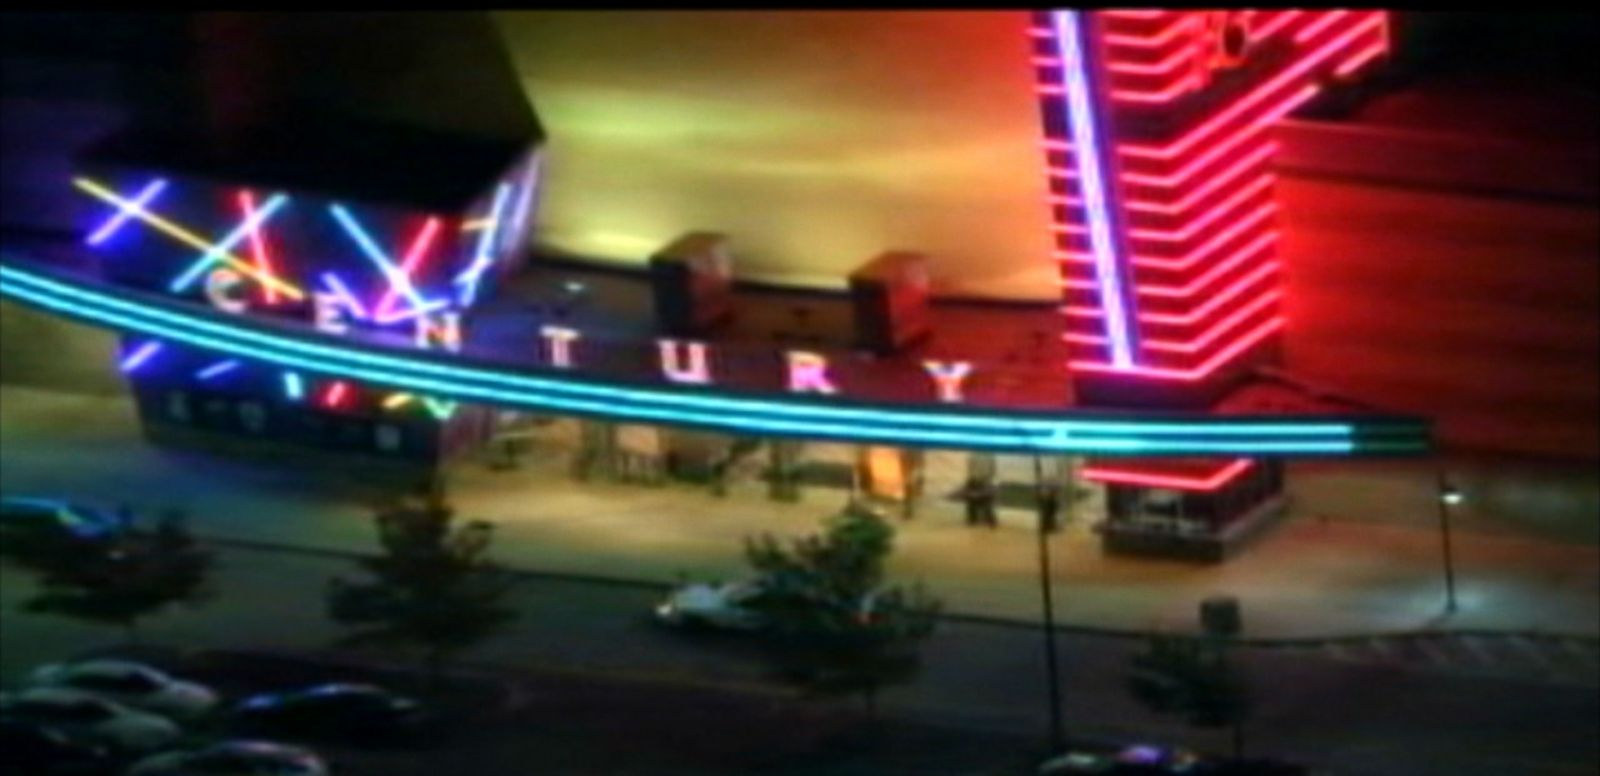 VIDEO: A frightened caller inside the Colorado theater reported the sound of fireworks shortly after the shooting.